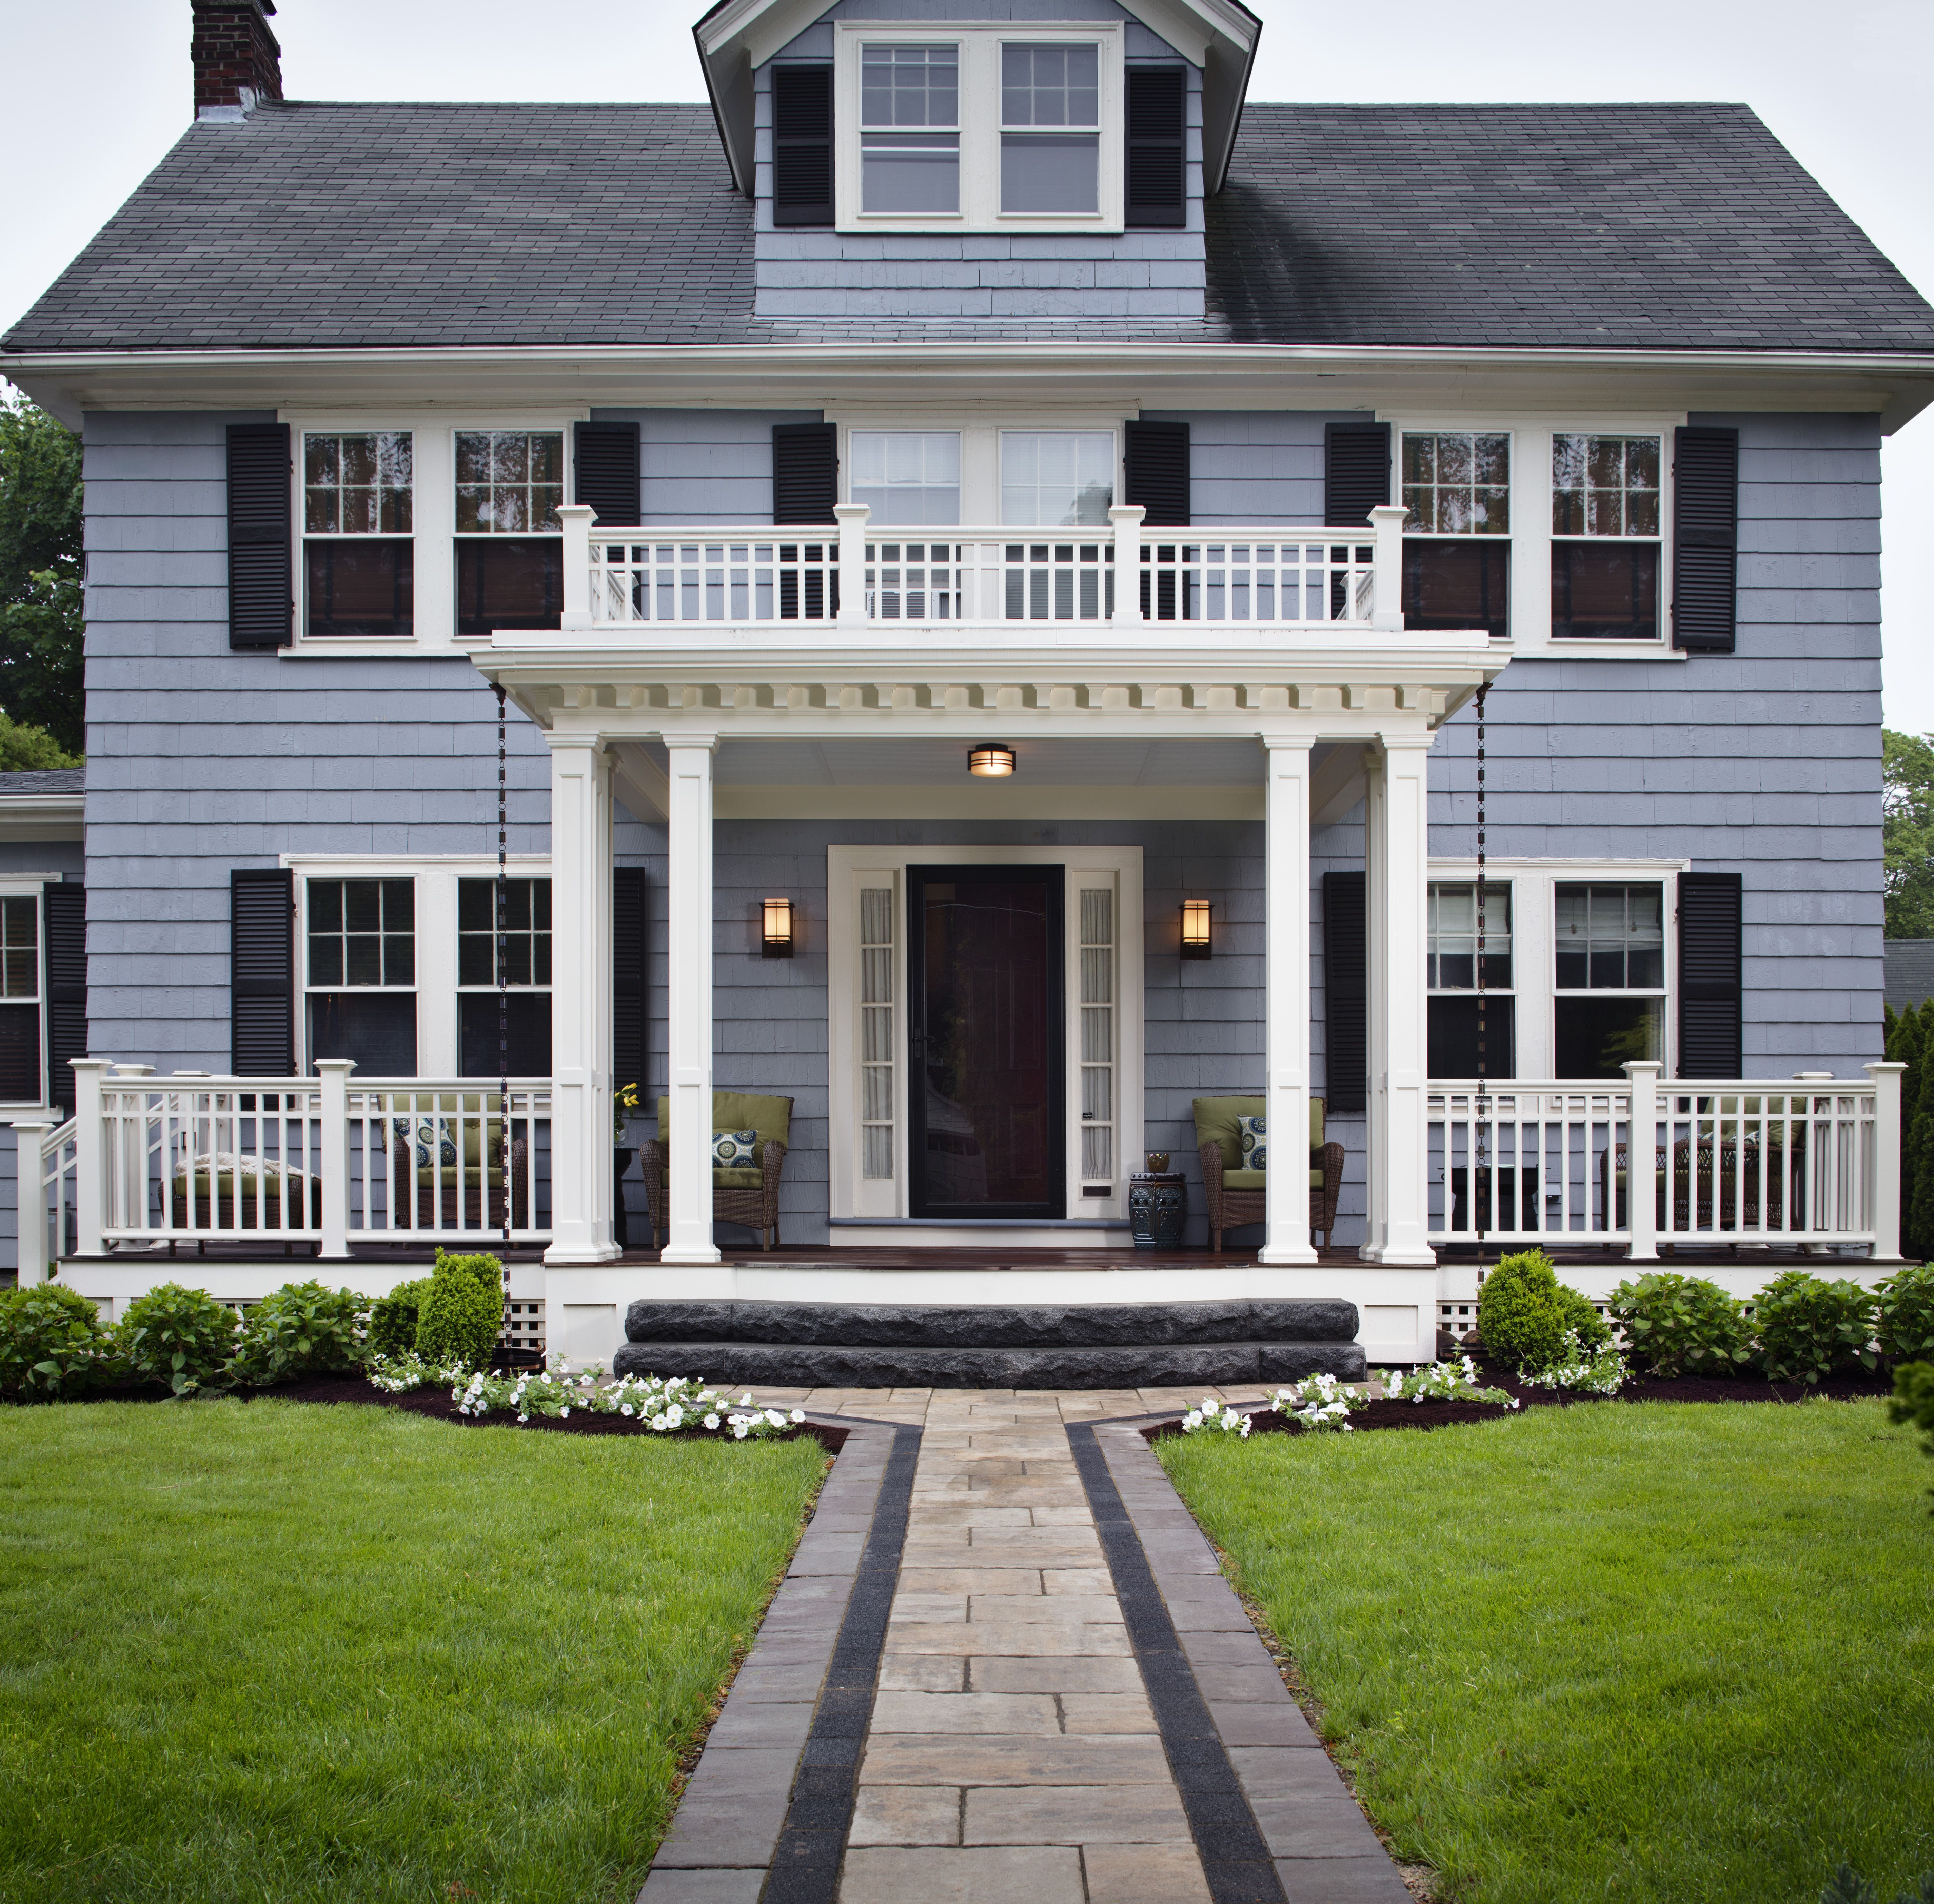 This spectacular front porch entryway including a balcony provides impressive curb appeal with a portico designswinchester mahouse